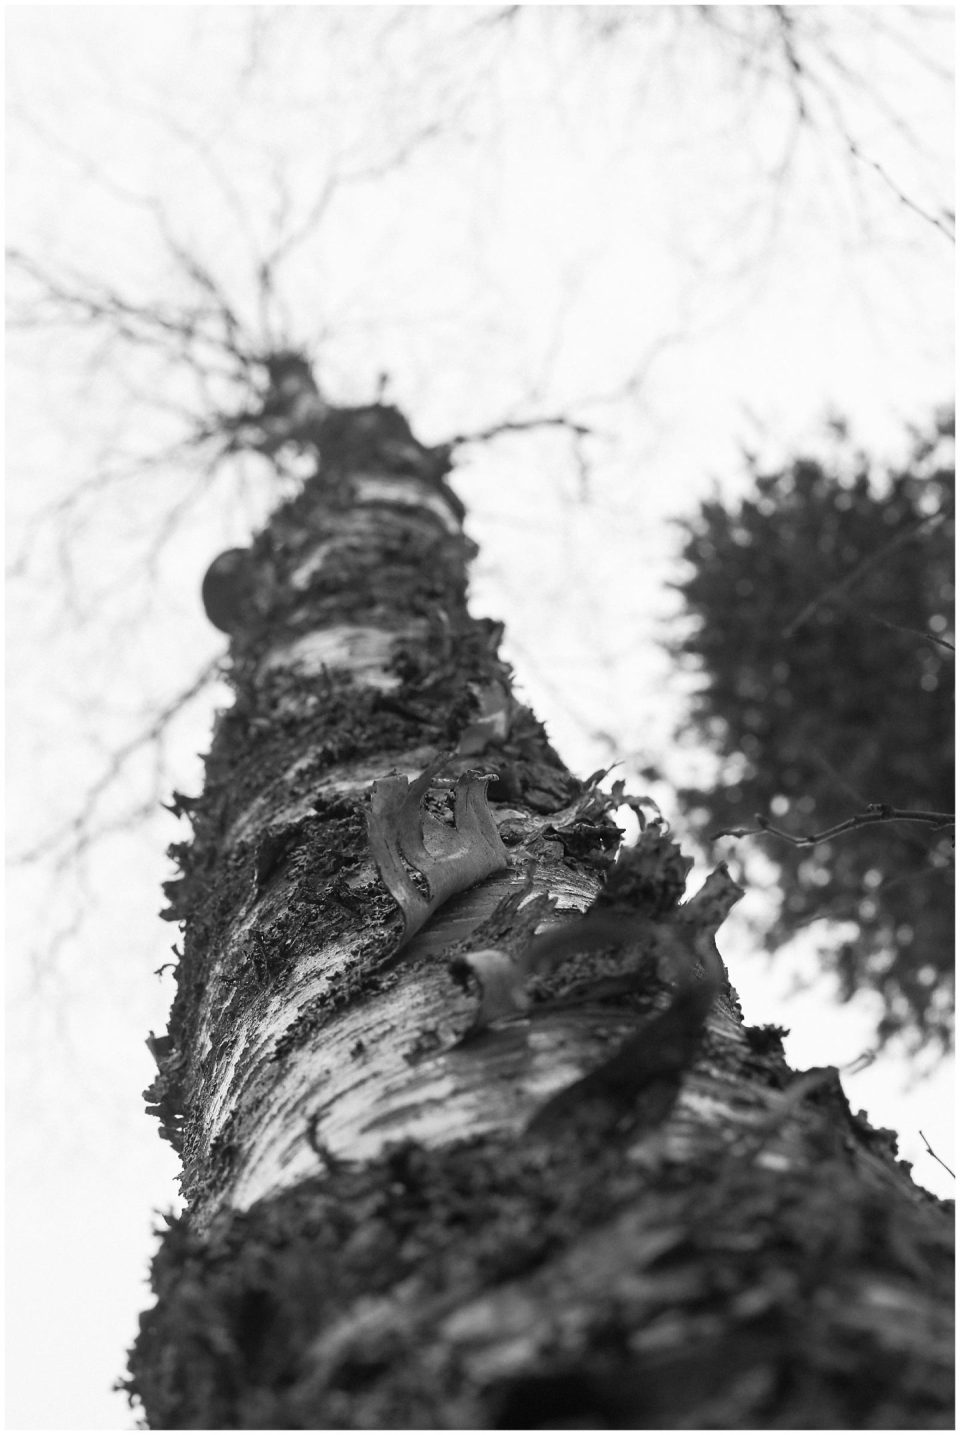 lapland finland tree bark and shedding one's past self